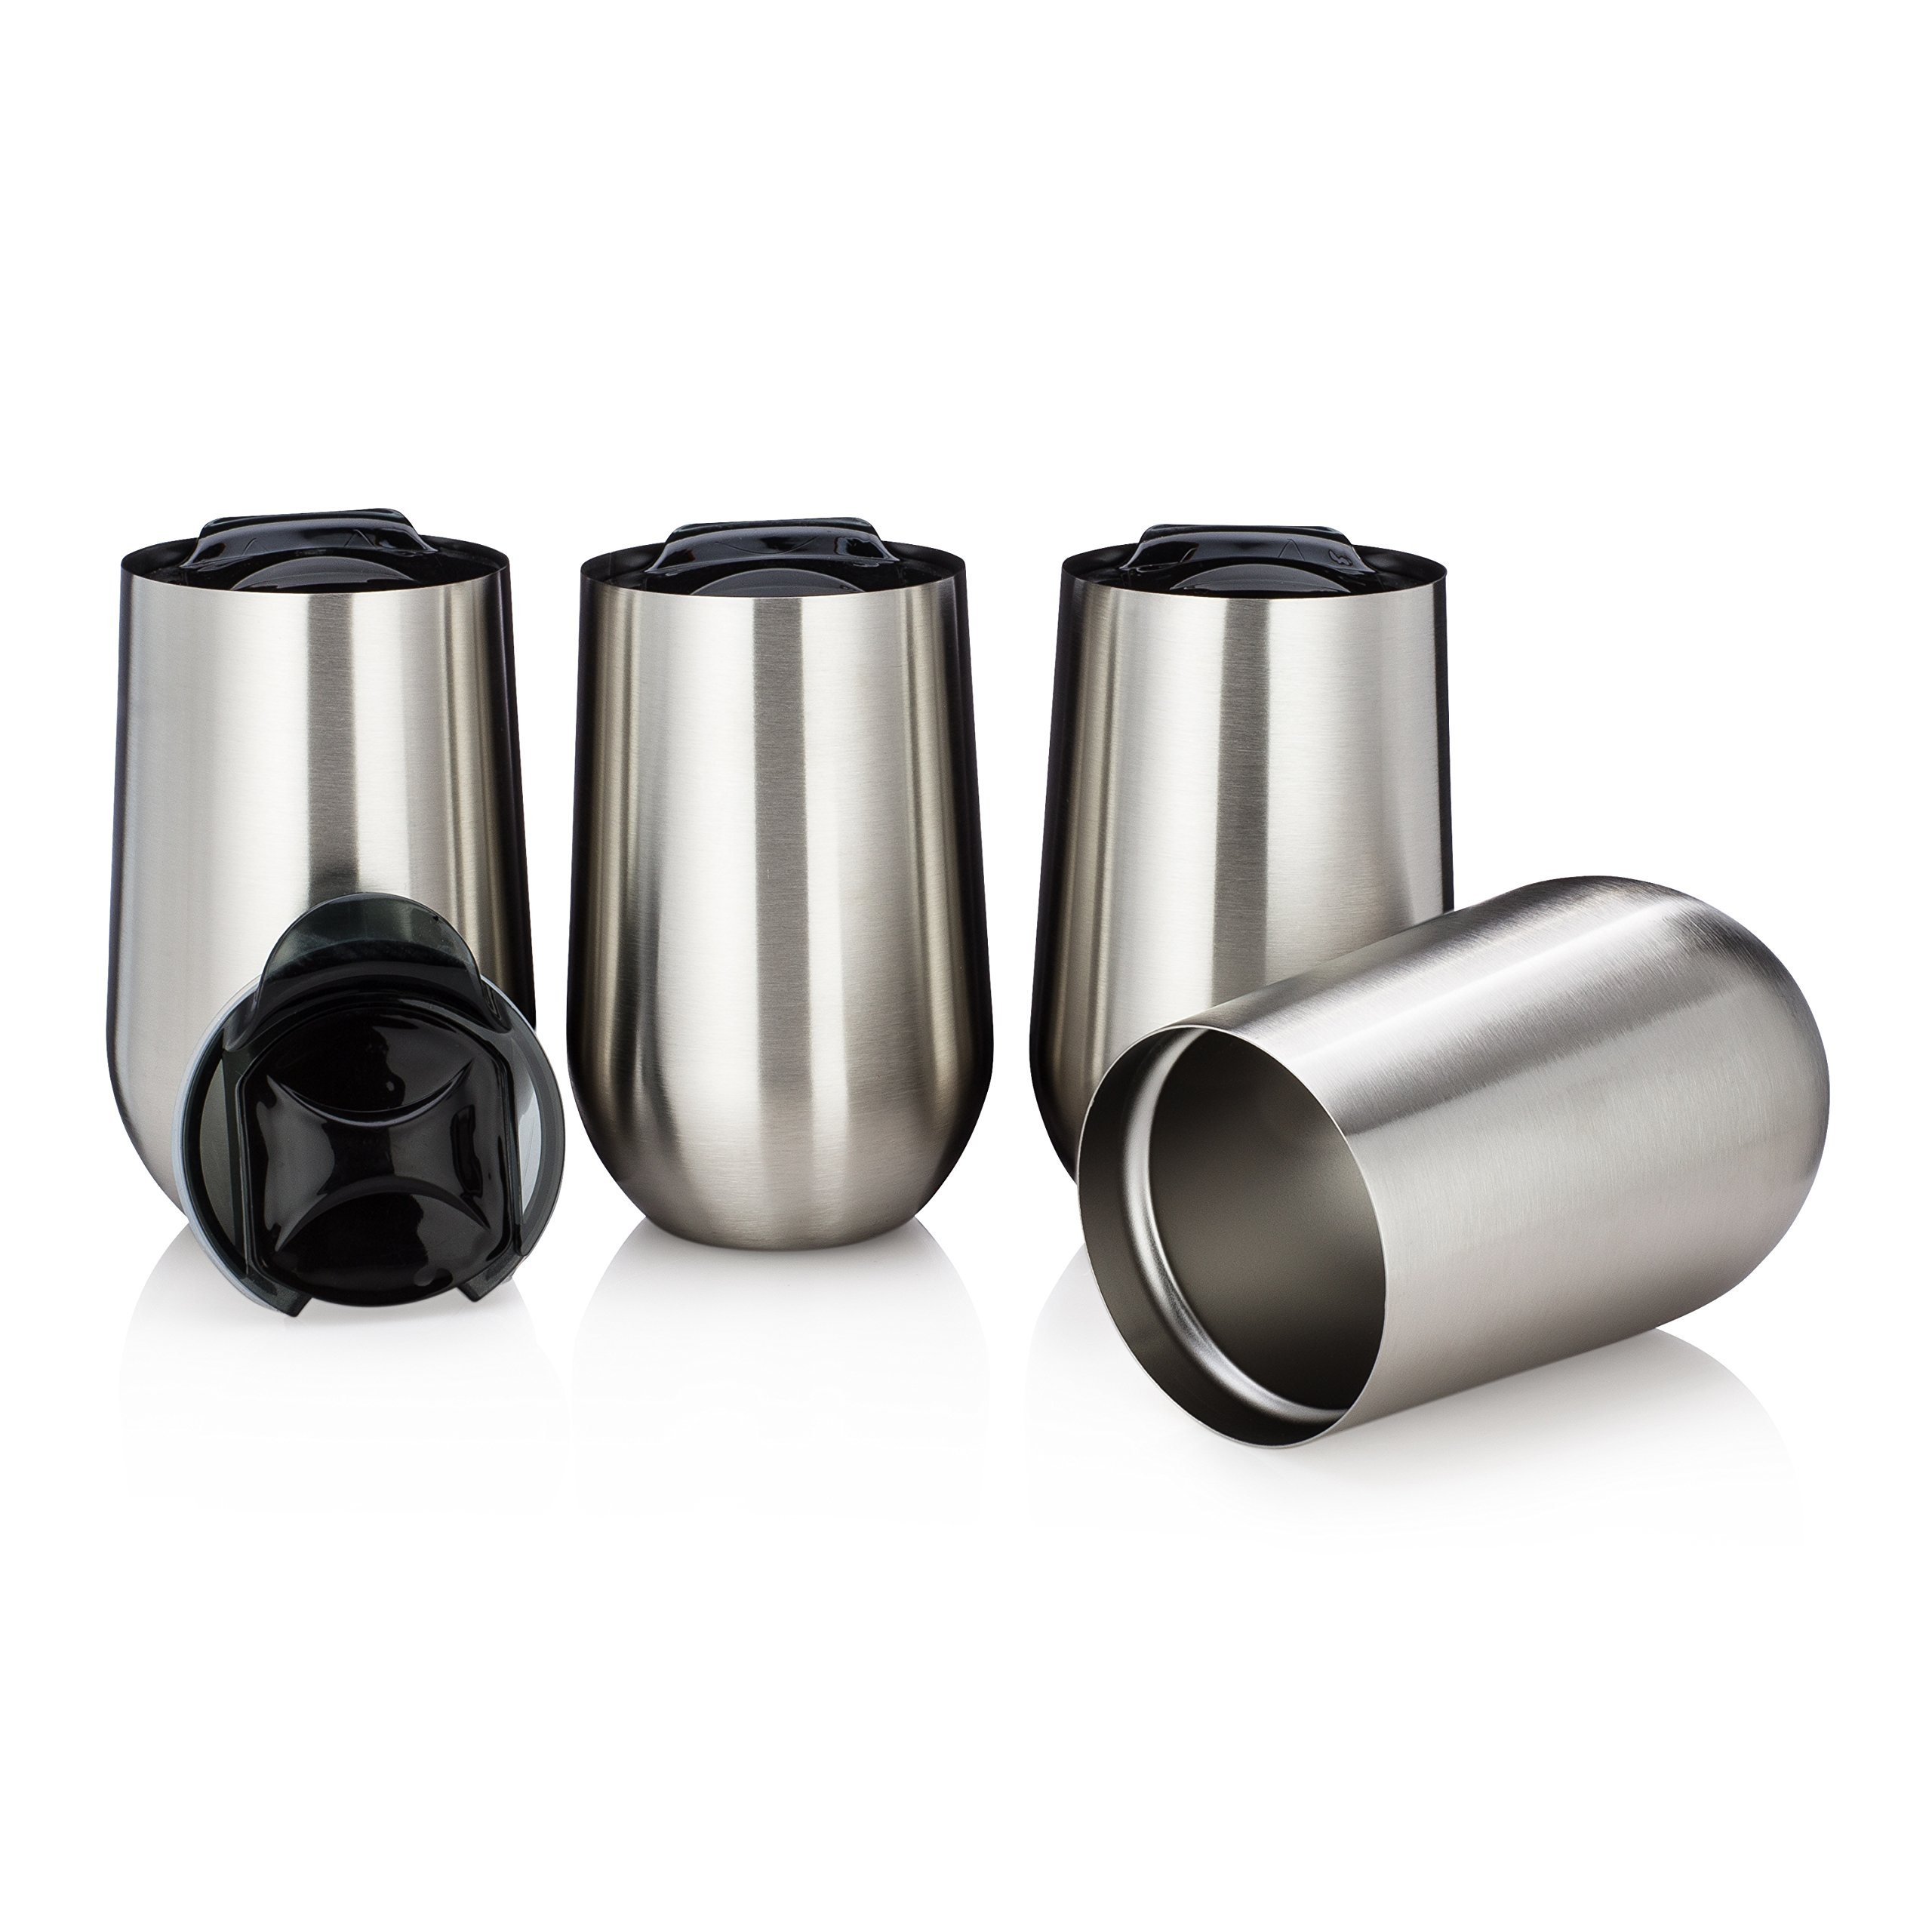 Stainless Steel Stemless Wine Glasses by Avito- Set of 4 Double Walled Insulated 15 Oz with Lid - Shatterproof - BPA Free Healthy Choice - Dishwasher Safe - Best Value